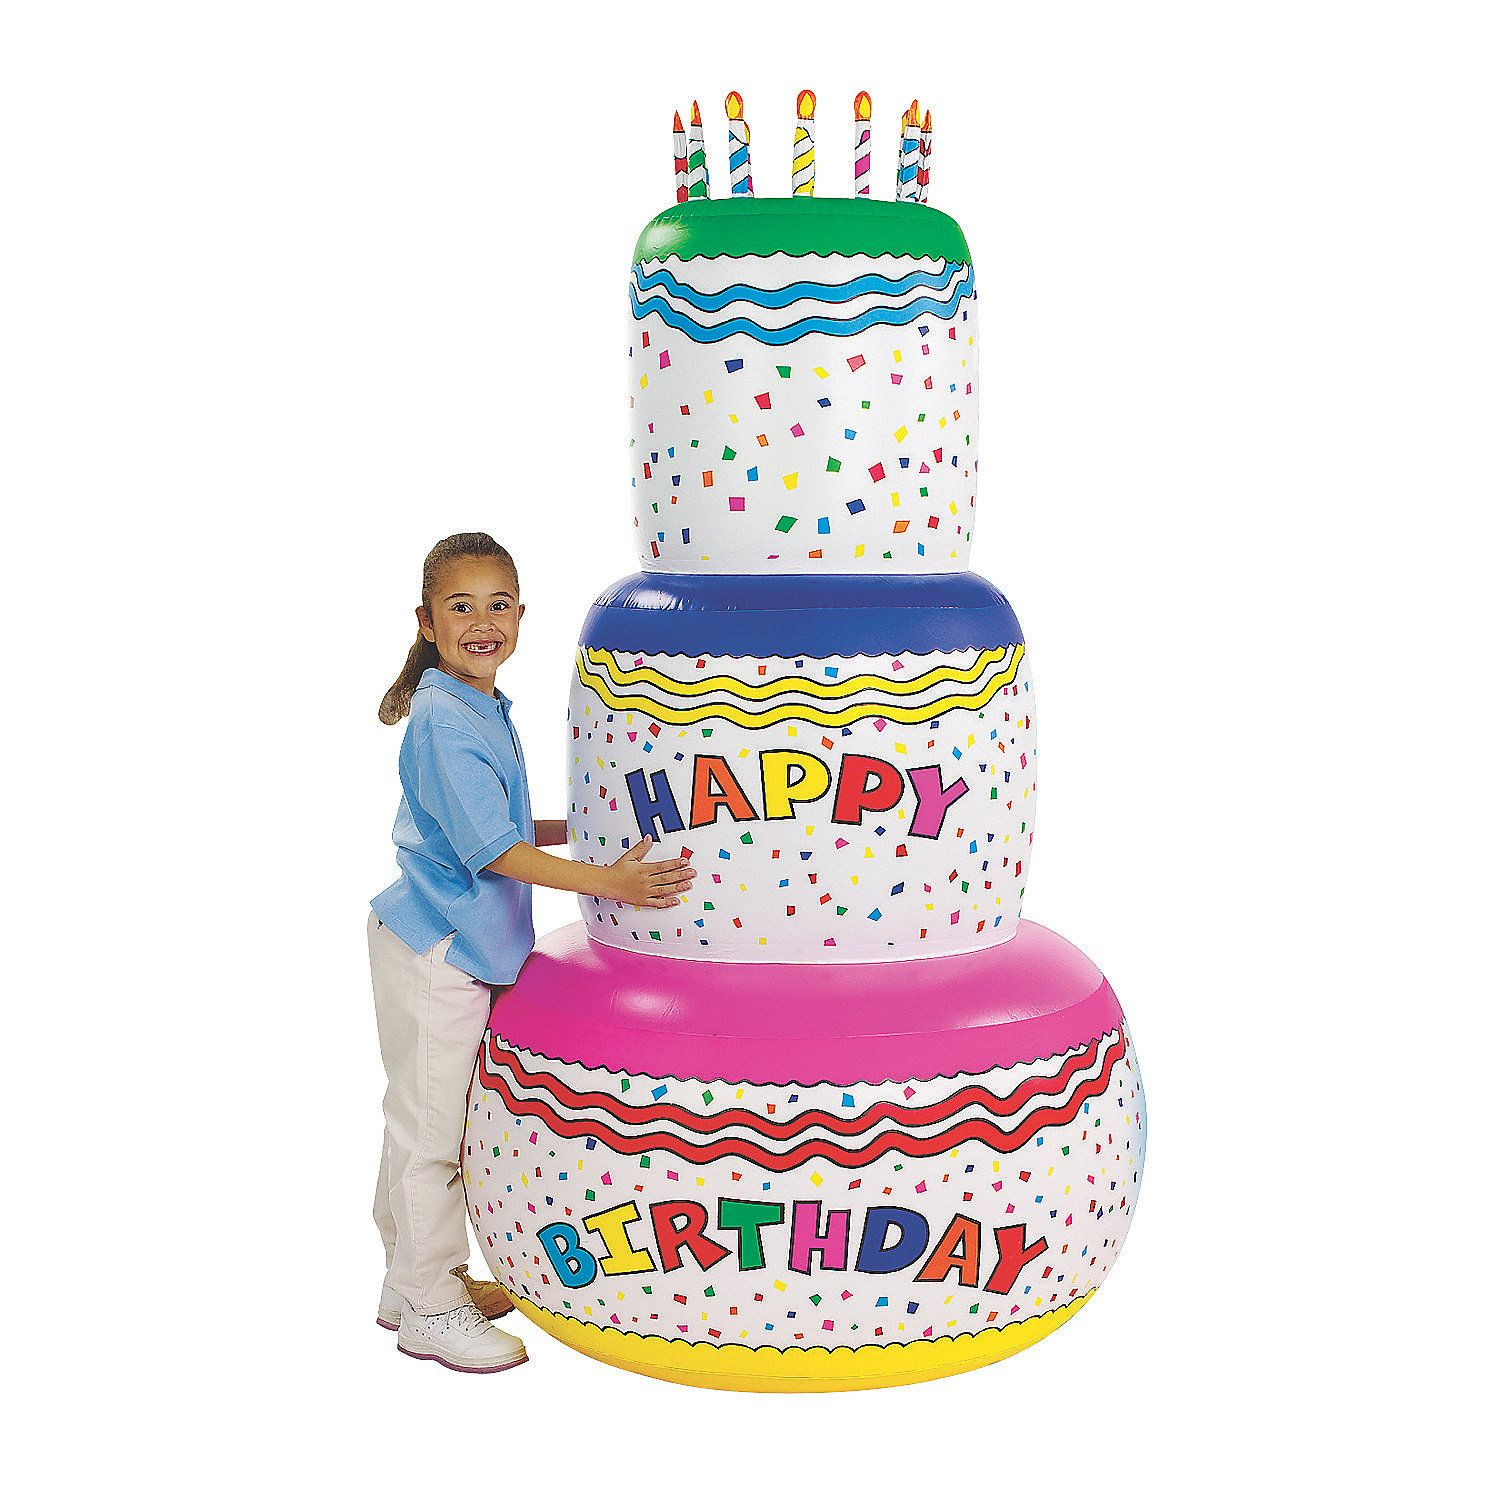 Tremendous Inflatable Jumbo Birthday Cake Orientaltrading Com For More Personalised Birthday Cards Bromeletsinfo